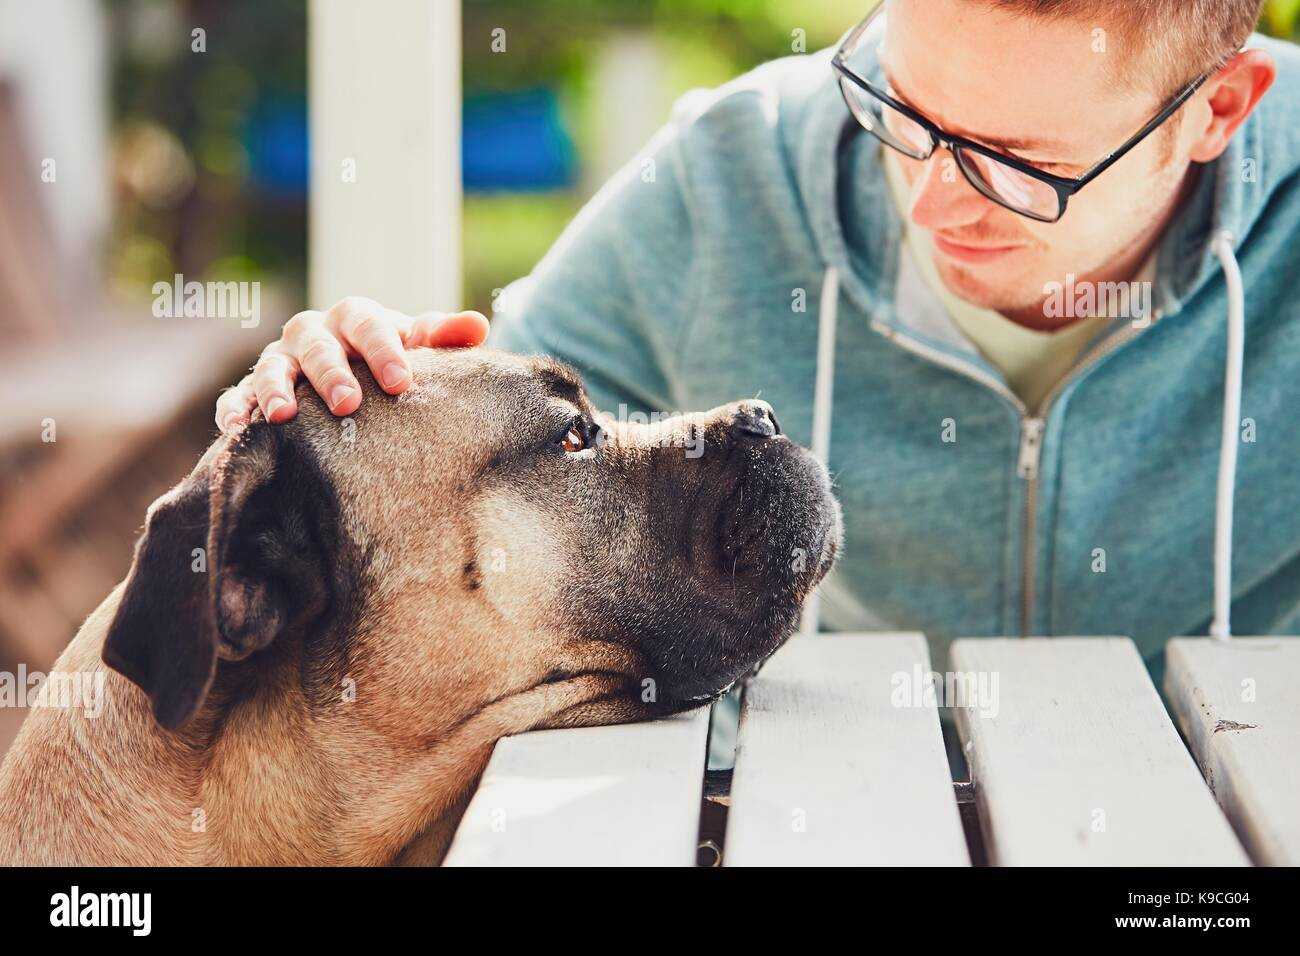 Devoted look of the huge dog. Friendship between young man and cane corso dog. - Stock Image